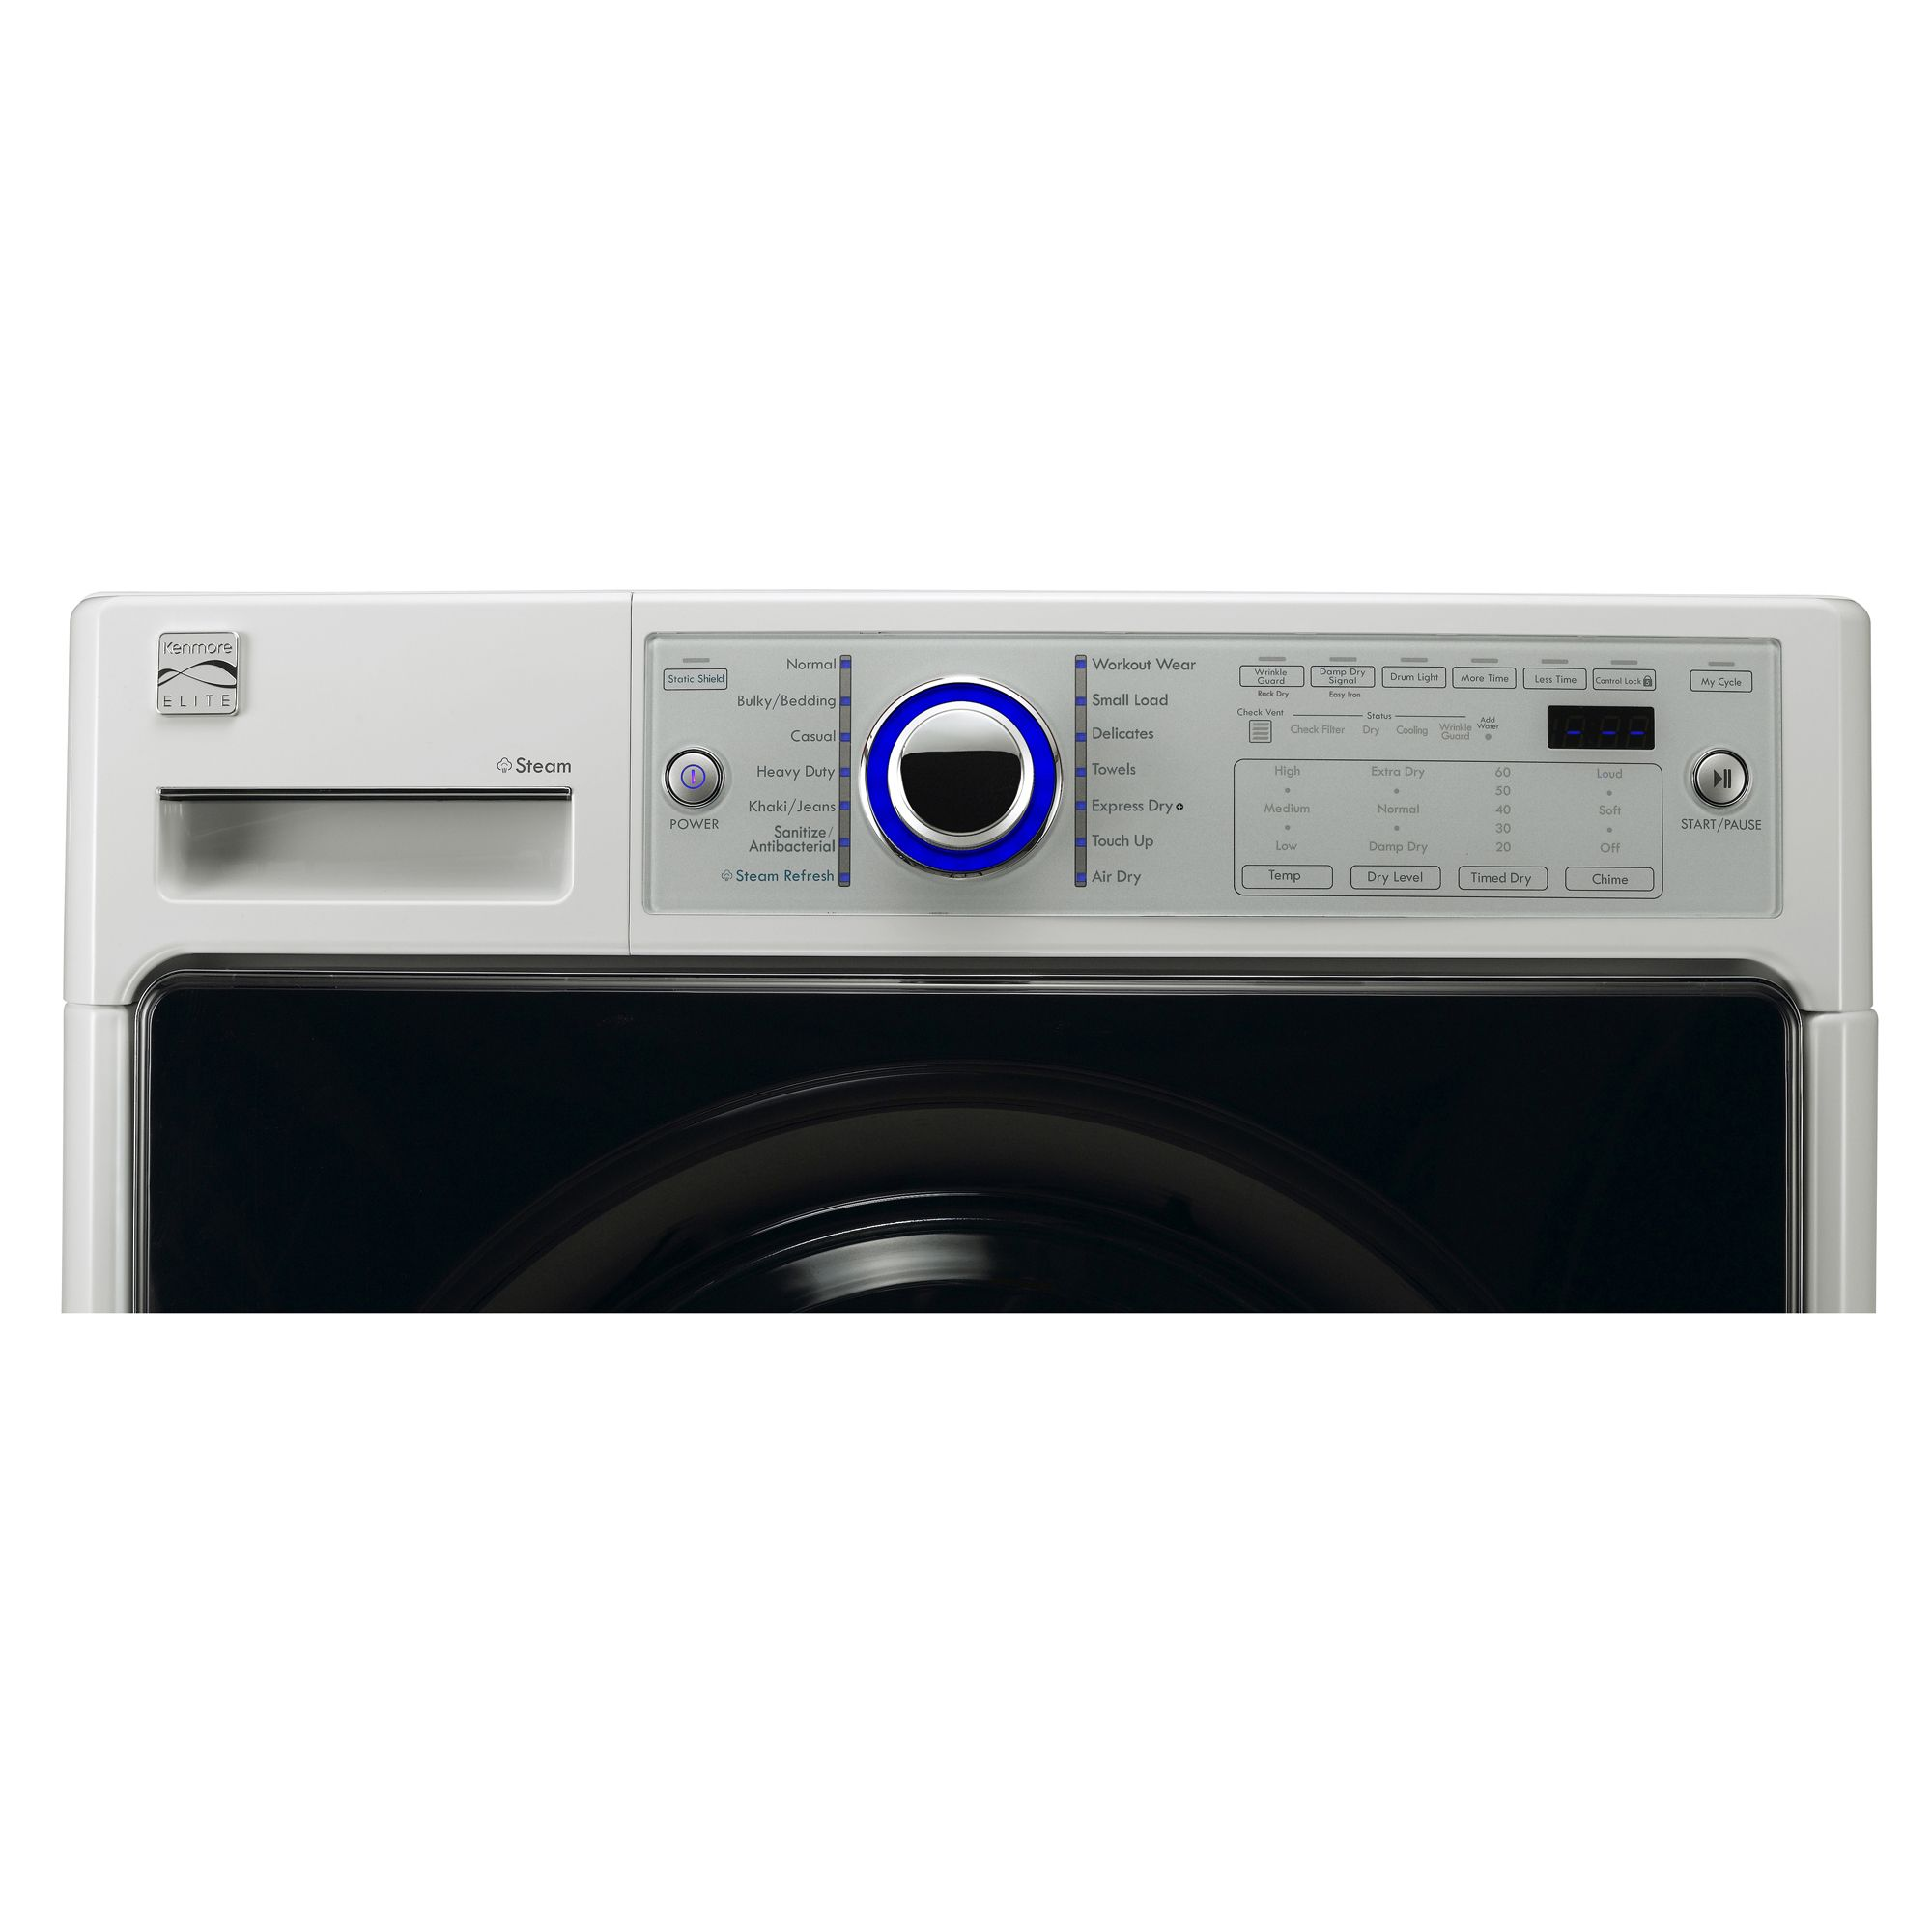 Kenmore Elite 7.4 cu. ft. Electric Steam Dryer, White